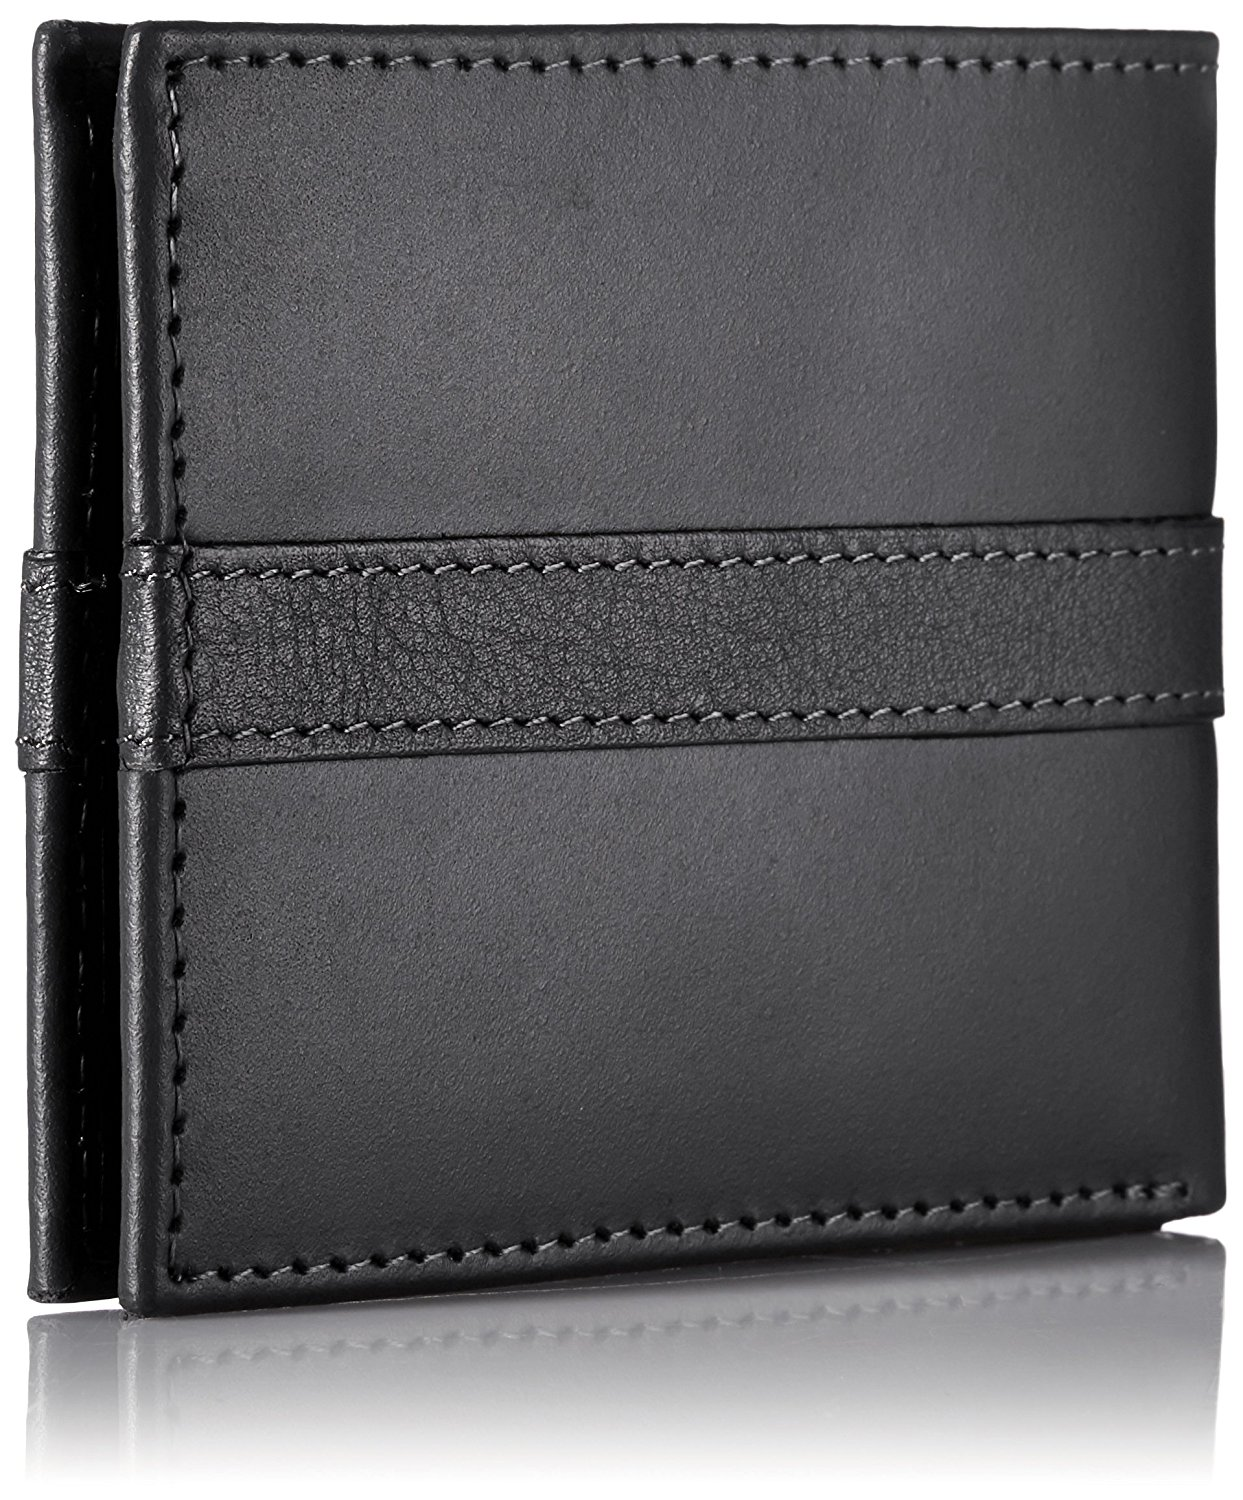 Tommy-Hilfiger-Men-039-s-Ranger-Leather-Passcase-Wallet-with-Removable-Card-Holder